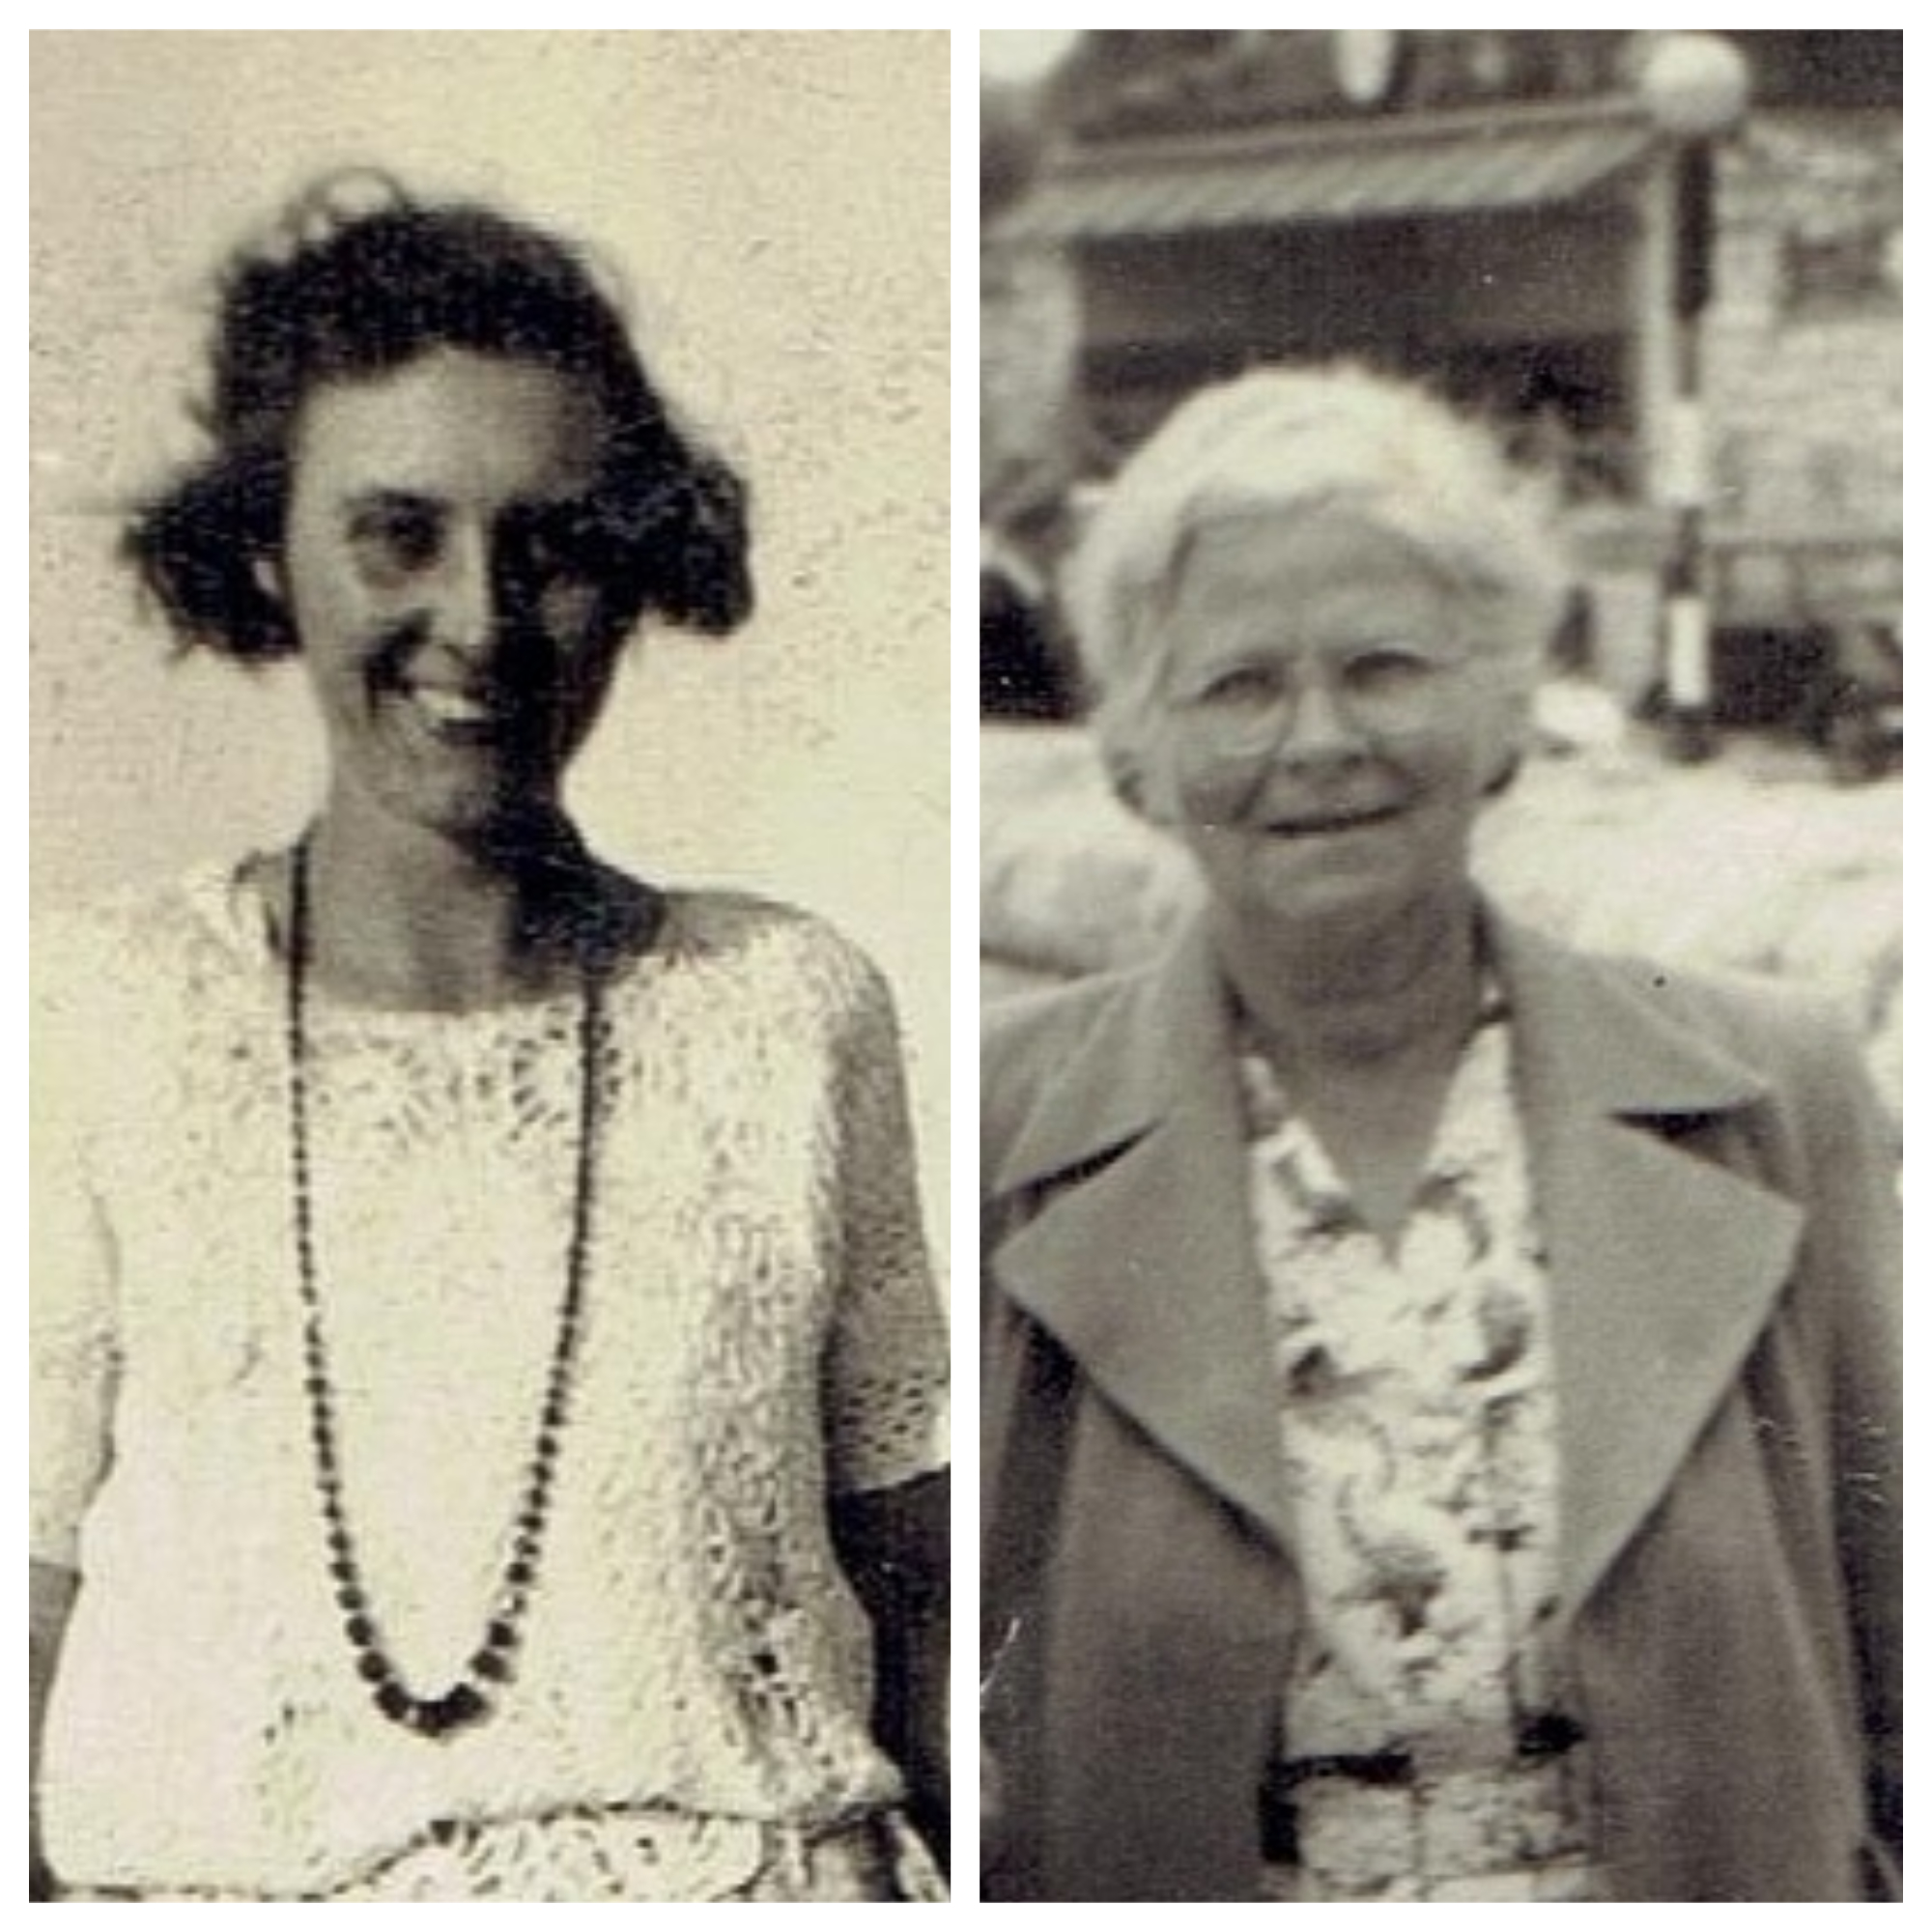 Image of two woman. One aged in her thirties taken around 1926. Th second woman aged in her sixties taken around 1955.